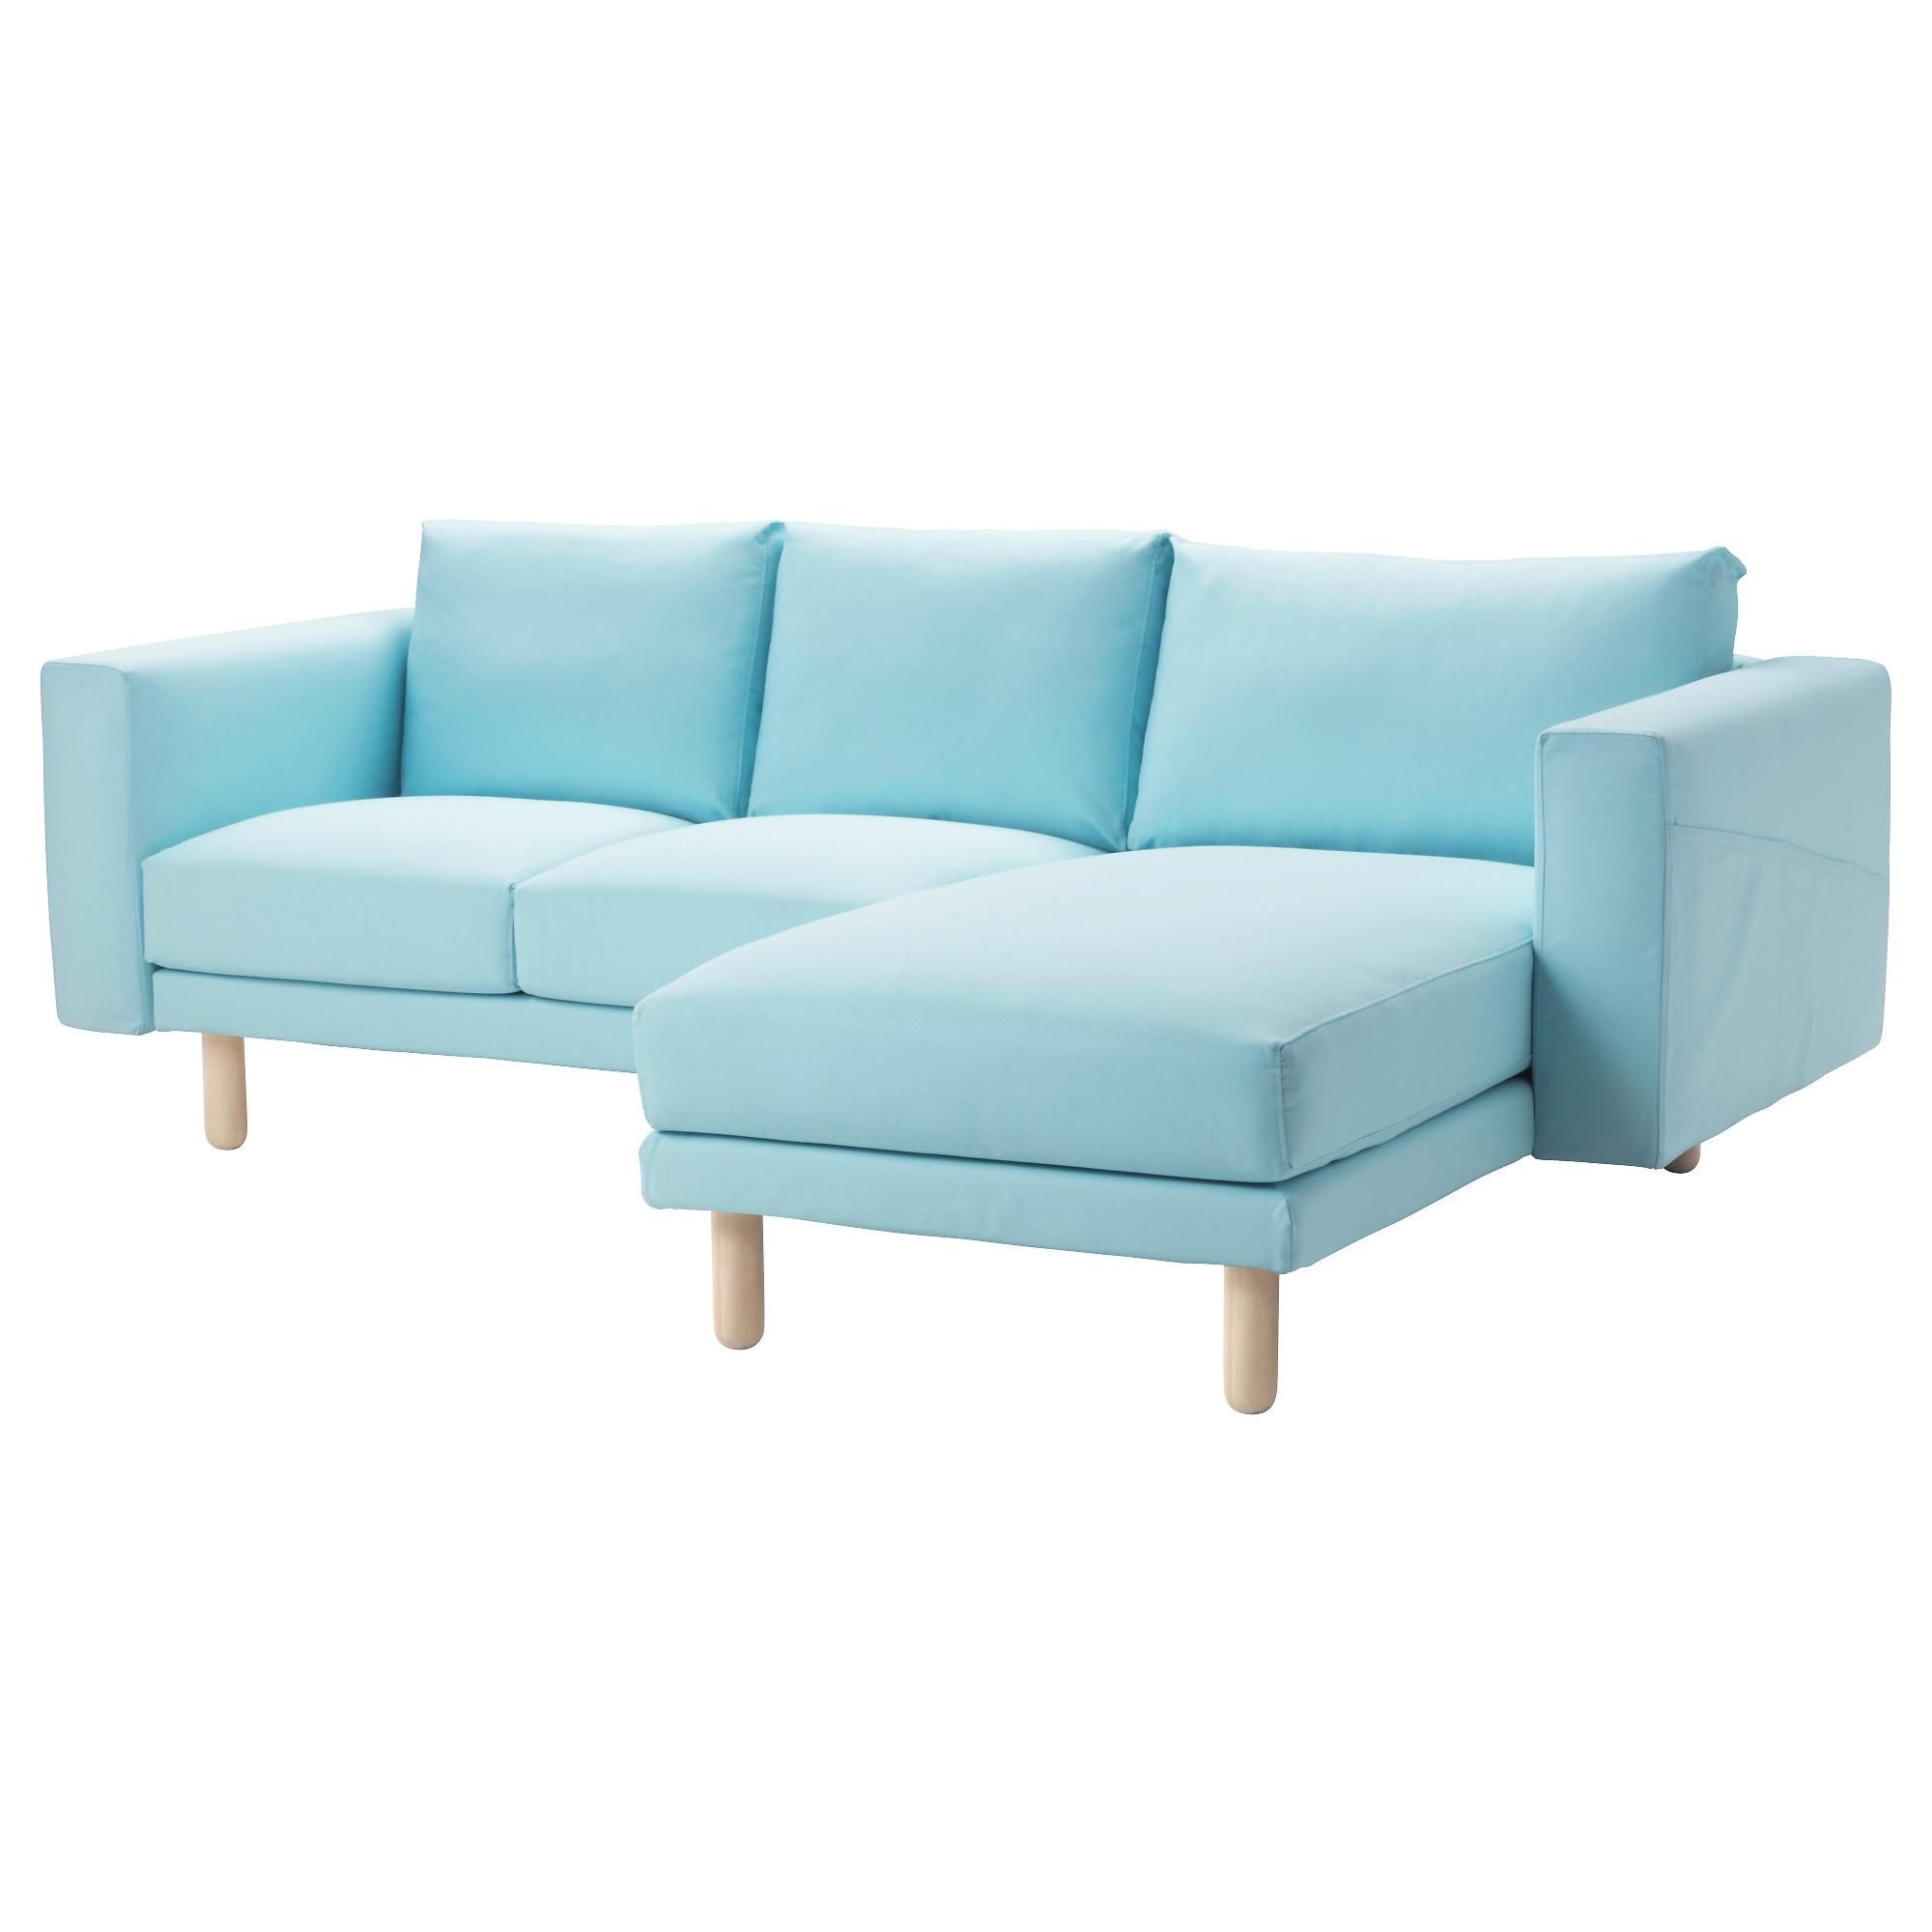 Norsborg Sectional, 3 Seat – Edum Light Blue, Birch – Ikea In Blue Sofa Chairs (Image 16 of 20)